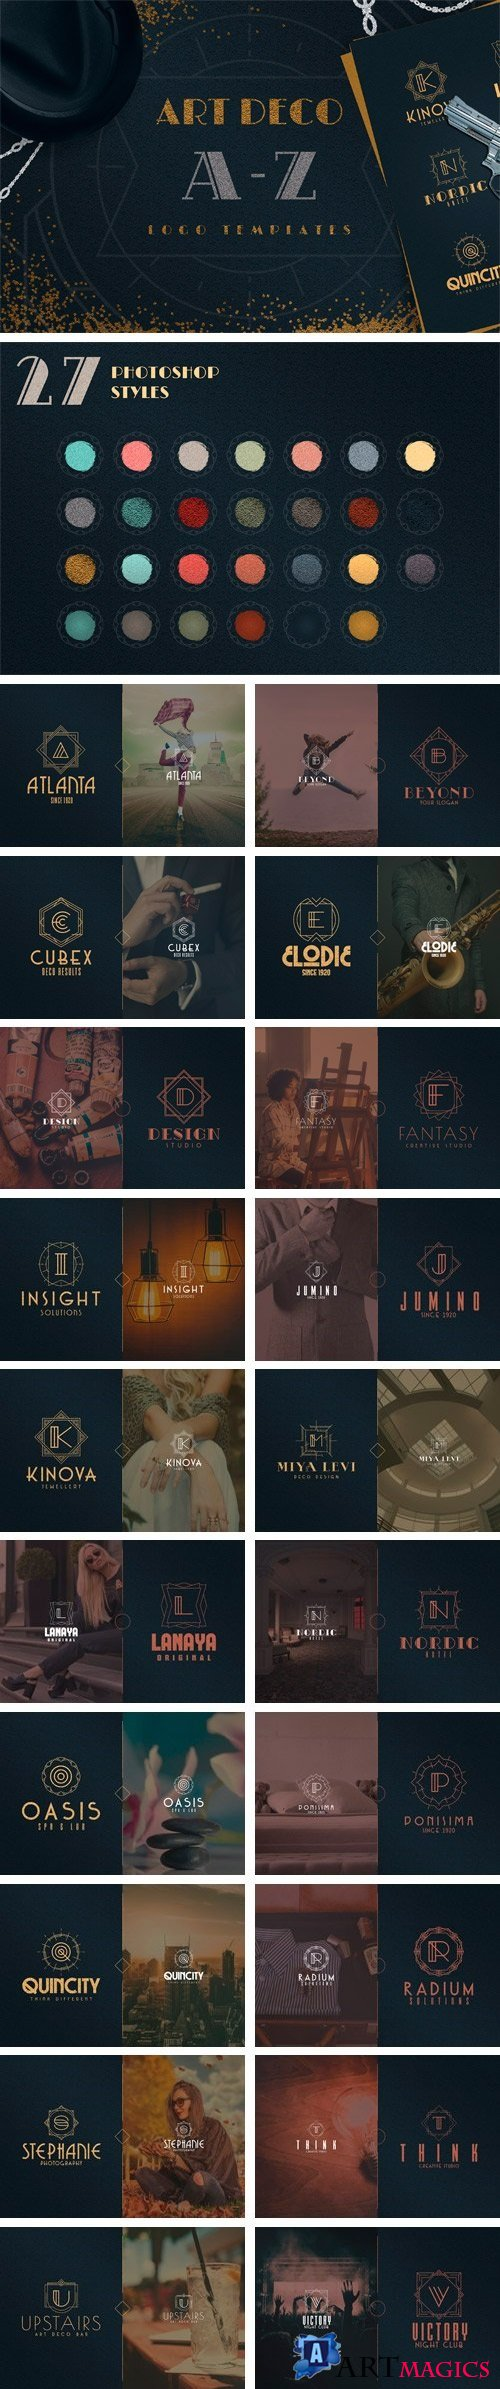 Art Deco A-Z Logo Templates 2112845